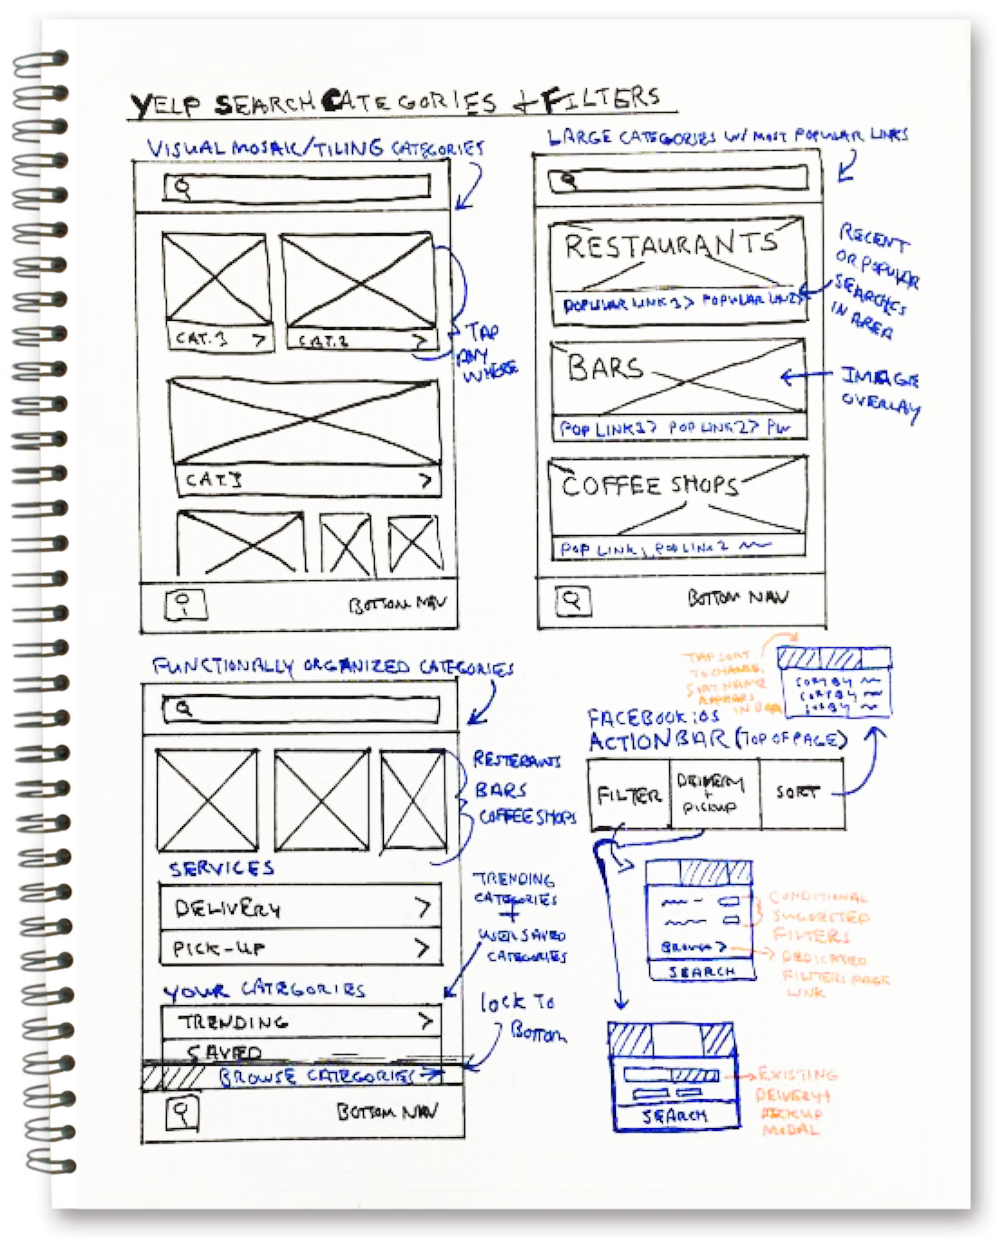 Based on my UX audit findings, I sketched a new framework to engage users with visual call to actions and encourage exploration of browse categories.